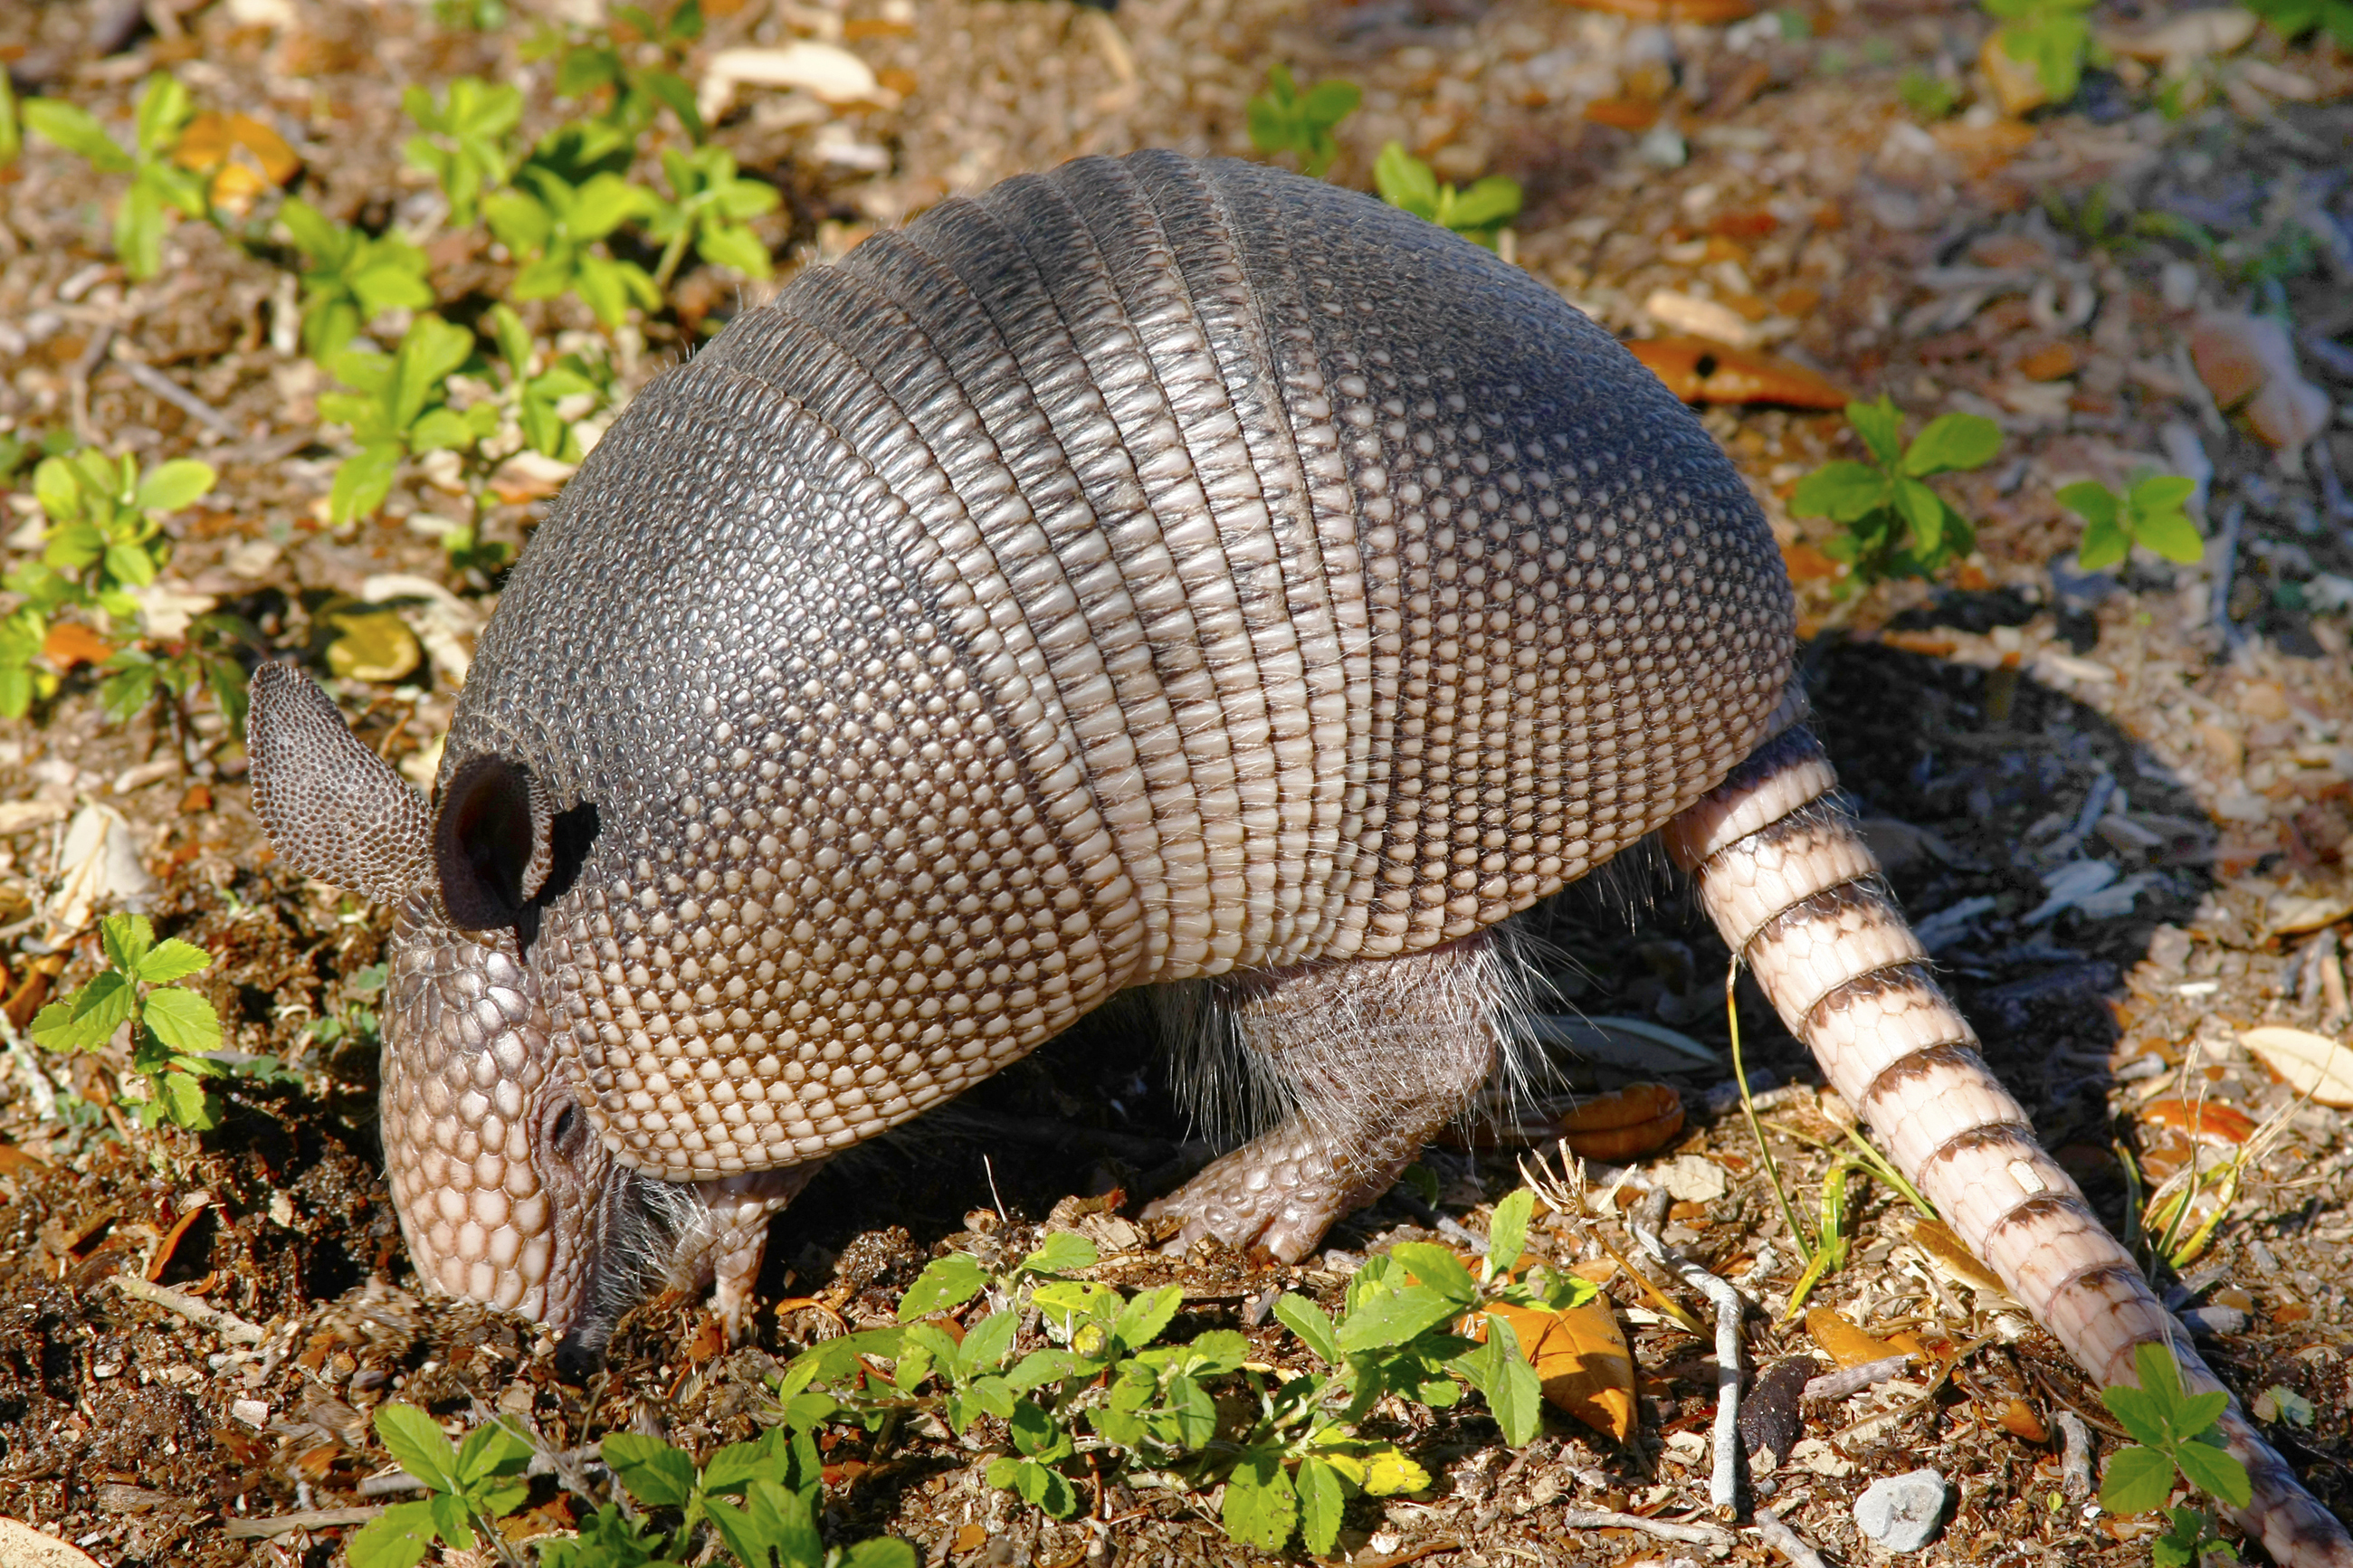 ARMADILLO DETAILED LITTLE ARMORED ONE SHELL WEARING COOKIE CUTTER USA PR2138